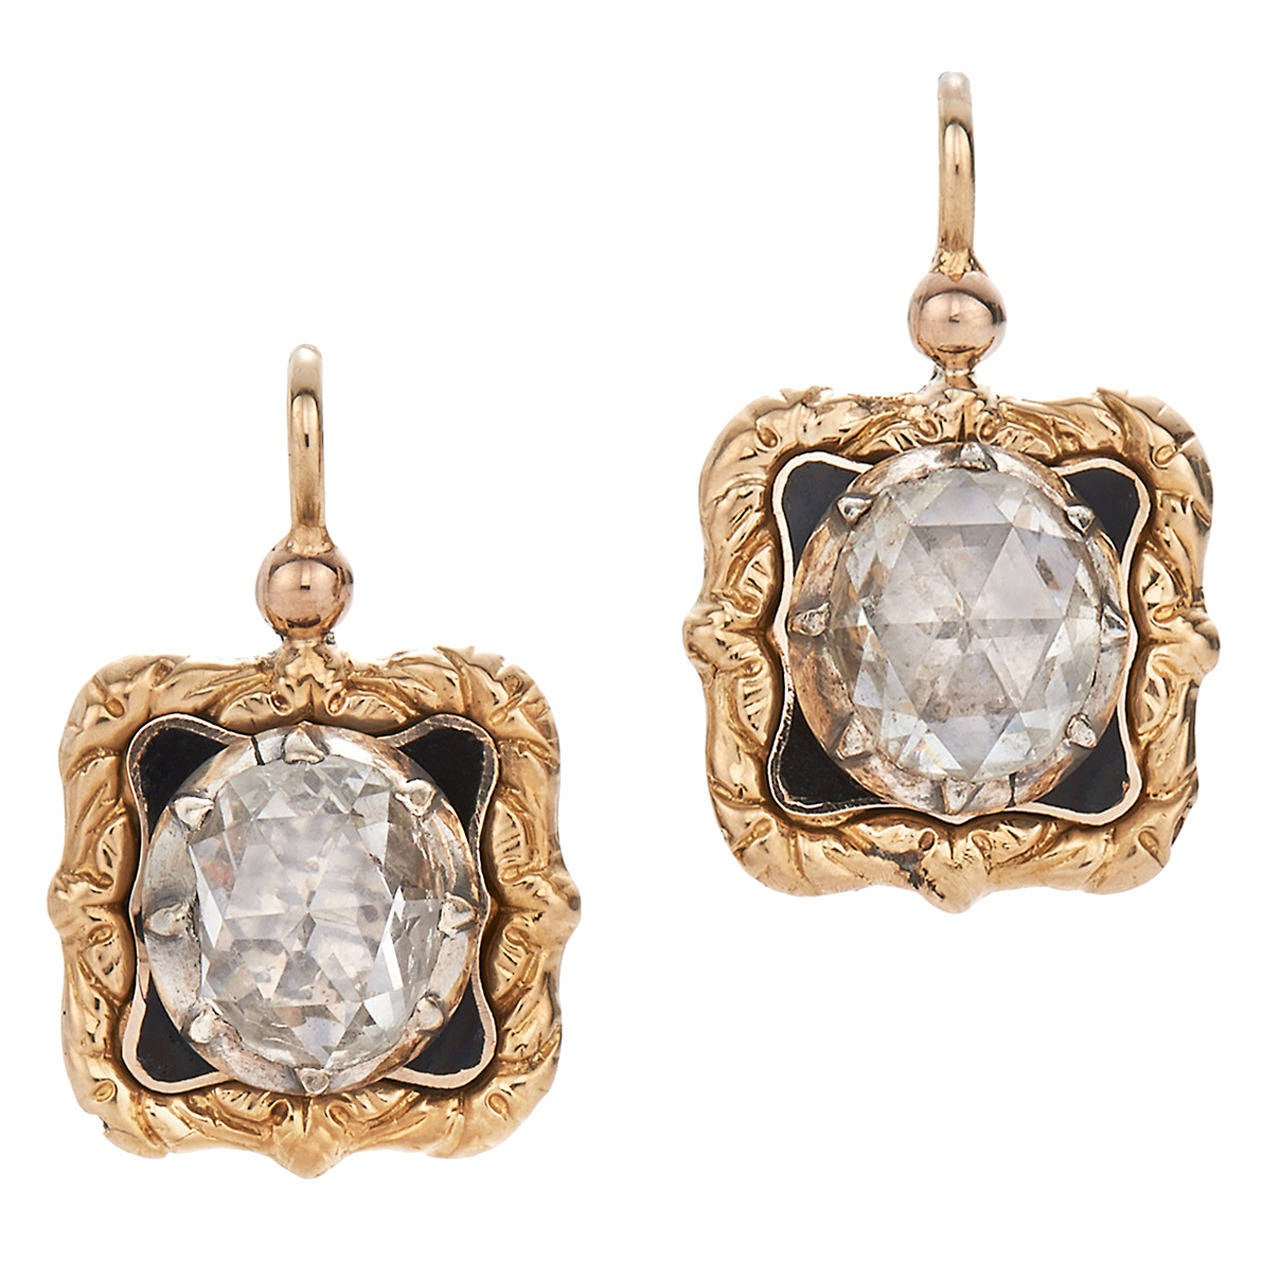 1850s Enamel Rose Cut Diamond Gold Drop Earrings 1